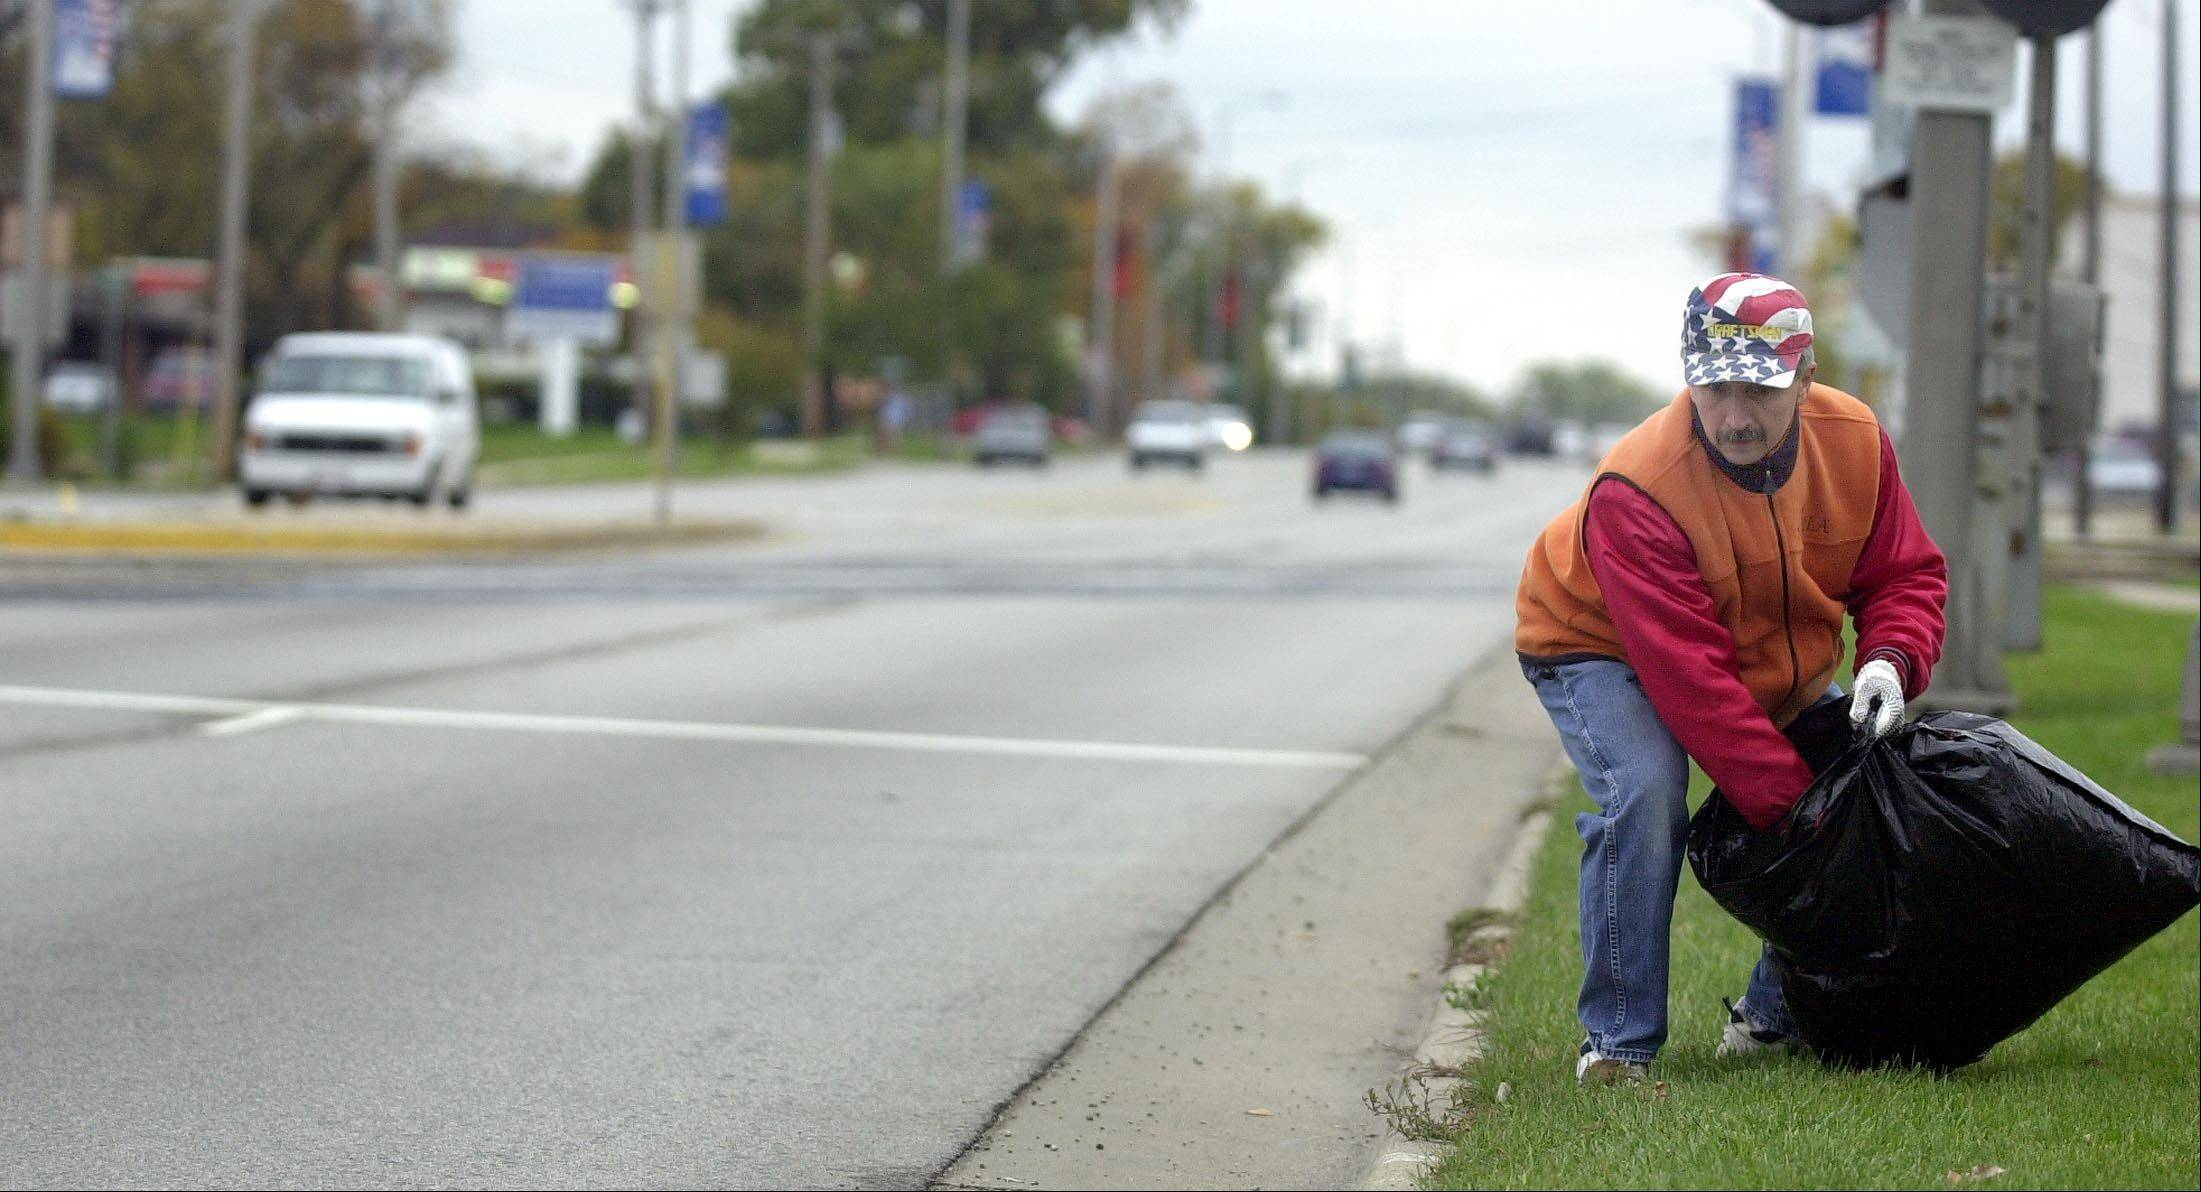 Make a Difference Day events are planned throughout DuPage County on Saturday, Oct. 22. They range from large-scale observances like those in Wheaton to smaller efforts, such as cleaning up trash along a road.